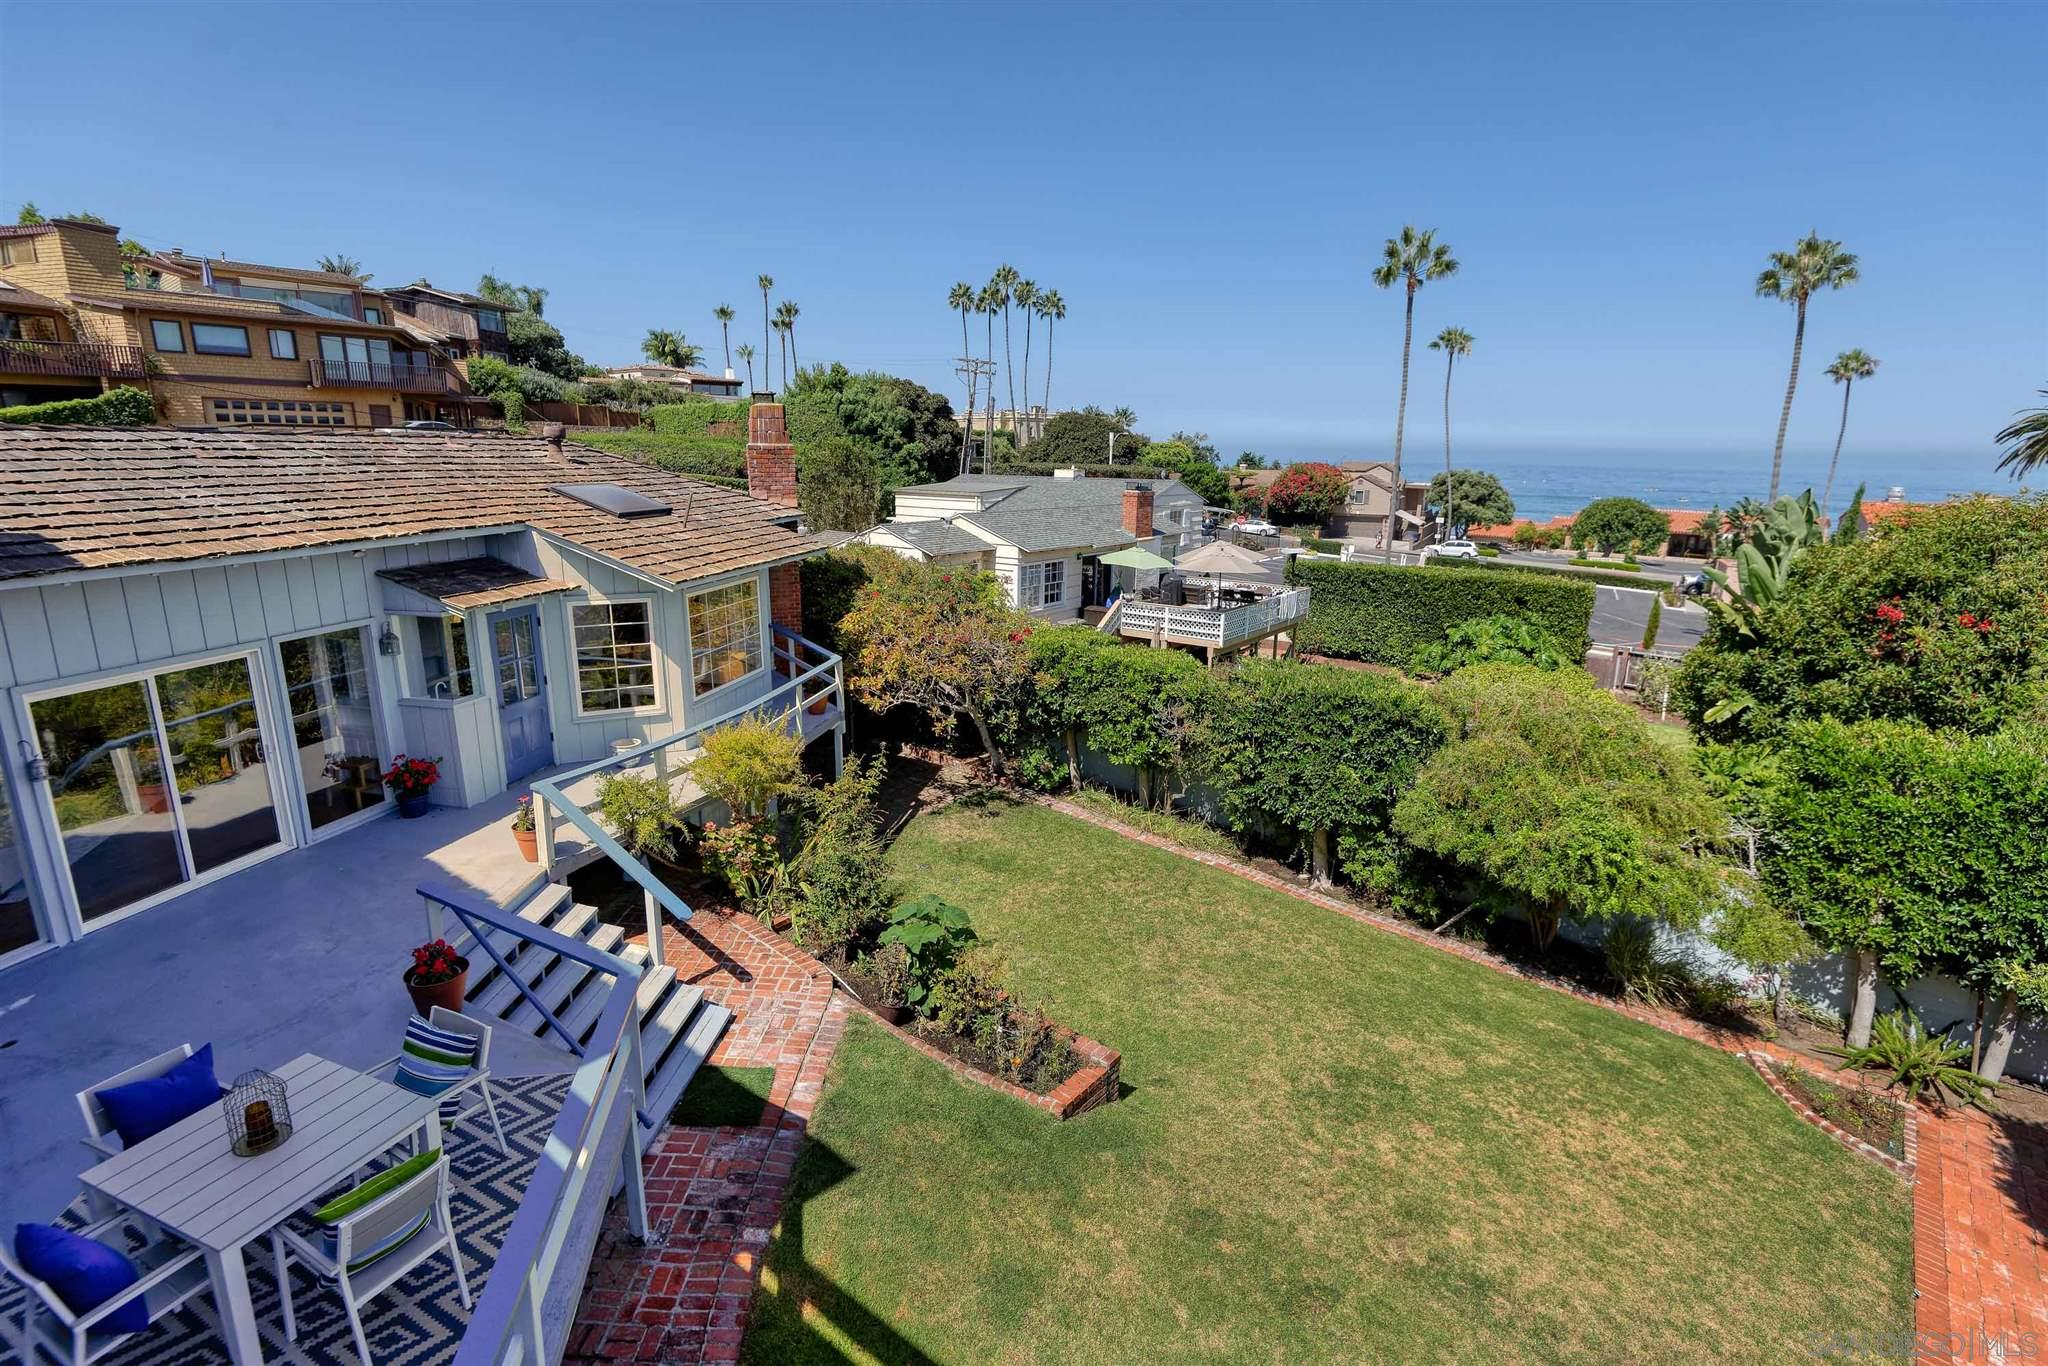 With ocean views in a superb La Jolla Shores location above La Jolla Beach & Tennis Club, this classic traditional home offers a welcoming gated courtyard entrance, bright, broad windows, doors, and skylights bringing in  wonderful natural sunlight with views to open sea, the picturesque, rugged cliffs of the North Shore, and the lush canopy of palms above the club tennis courts. Outdoor decks and a large lawn invite entertaining with beach,Shores Village shops, restaurants just steps away.